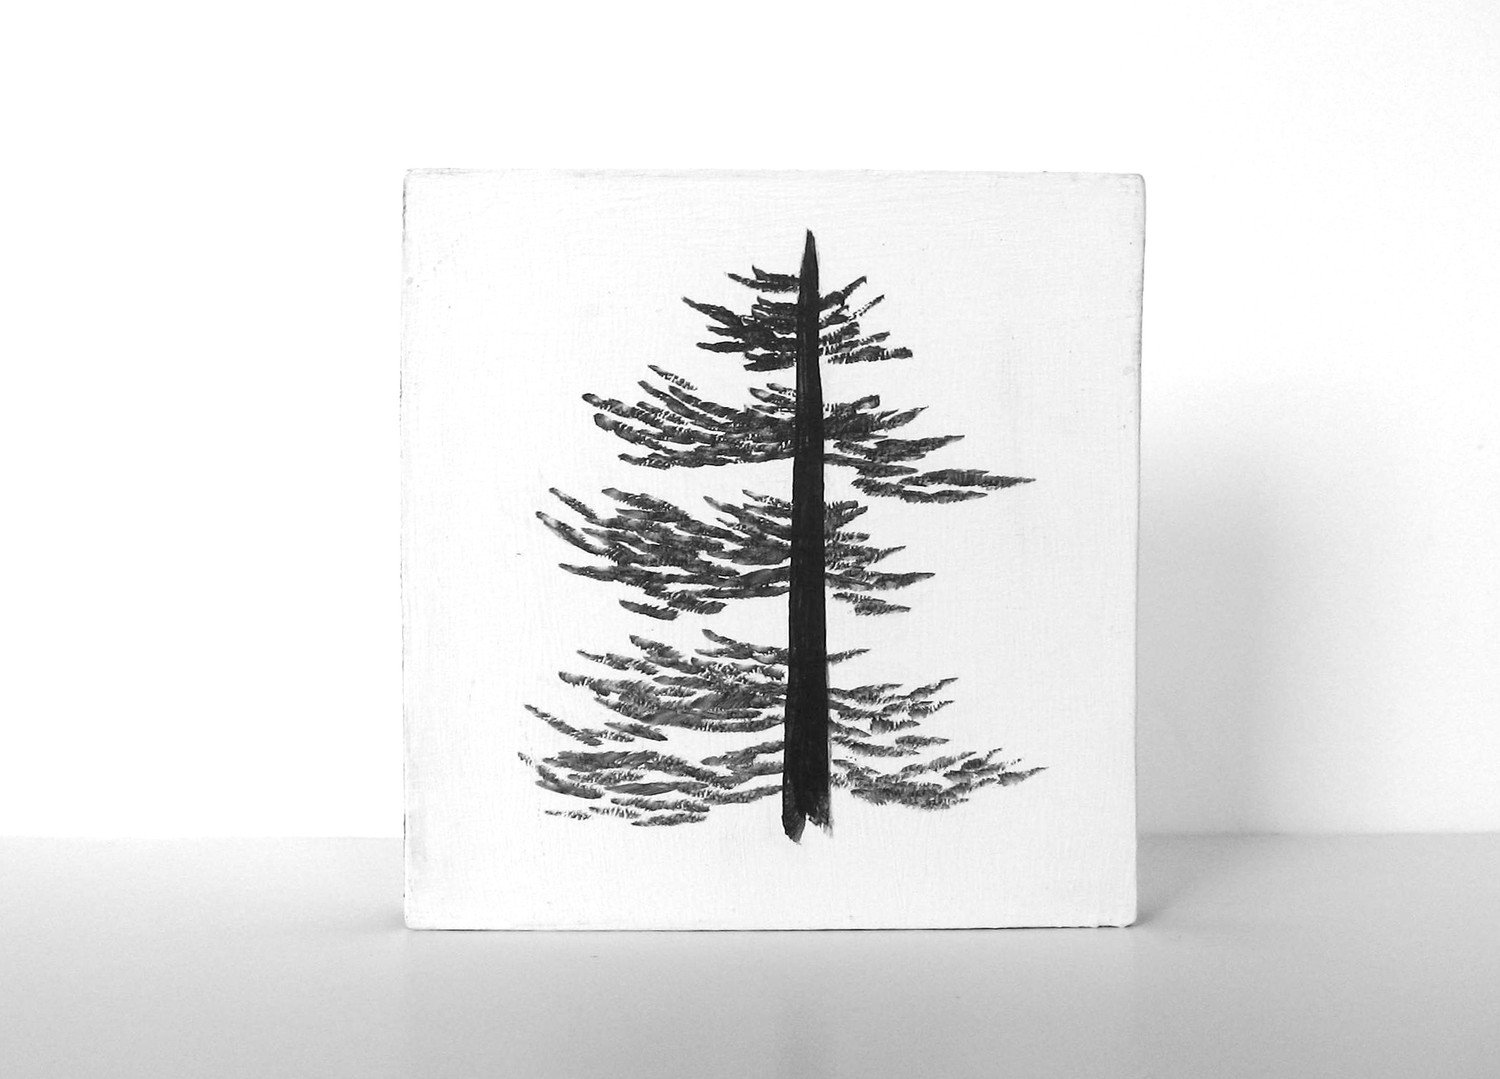 6x6 Art Block Painting PIne Tree Black White Texas Woods Forest Nature Red Tile Studio